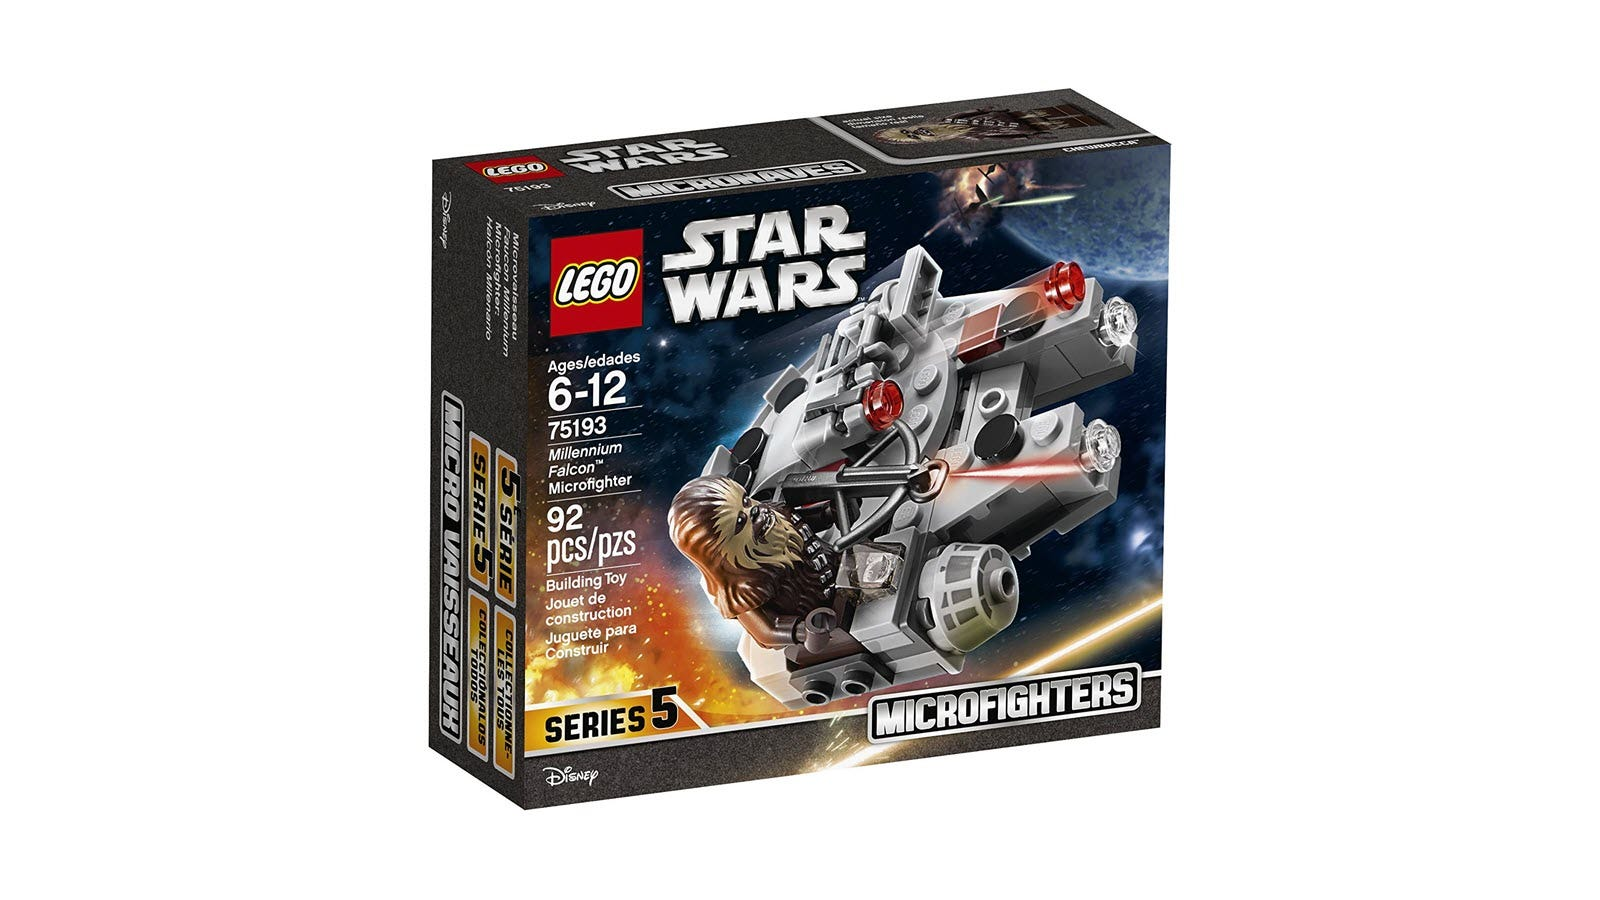 A box featuring LEGO Chewbacca riding in a Lego Millennium Falcon